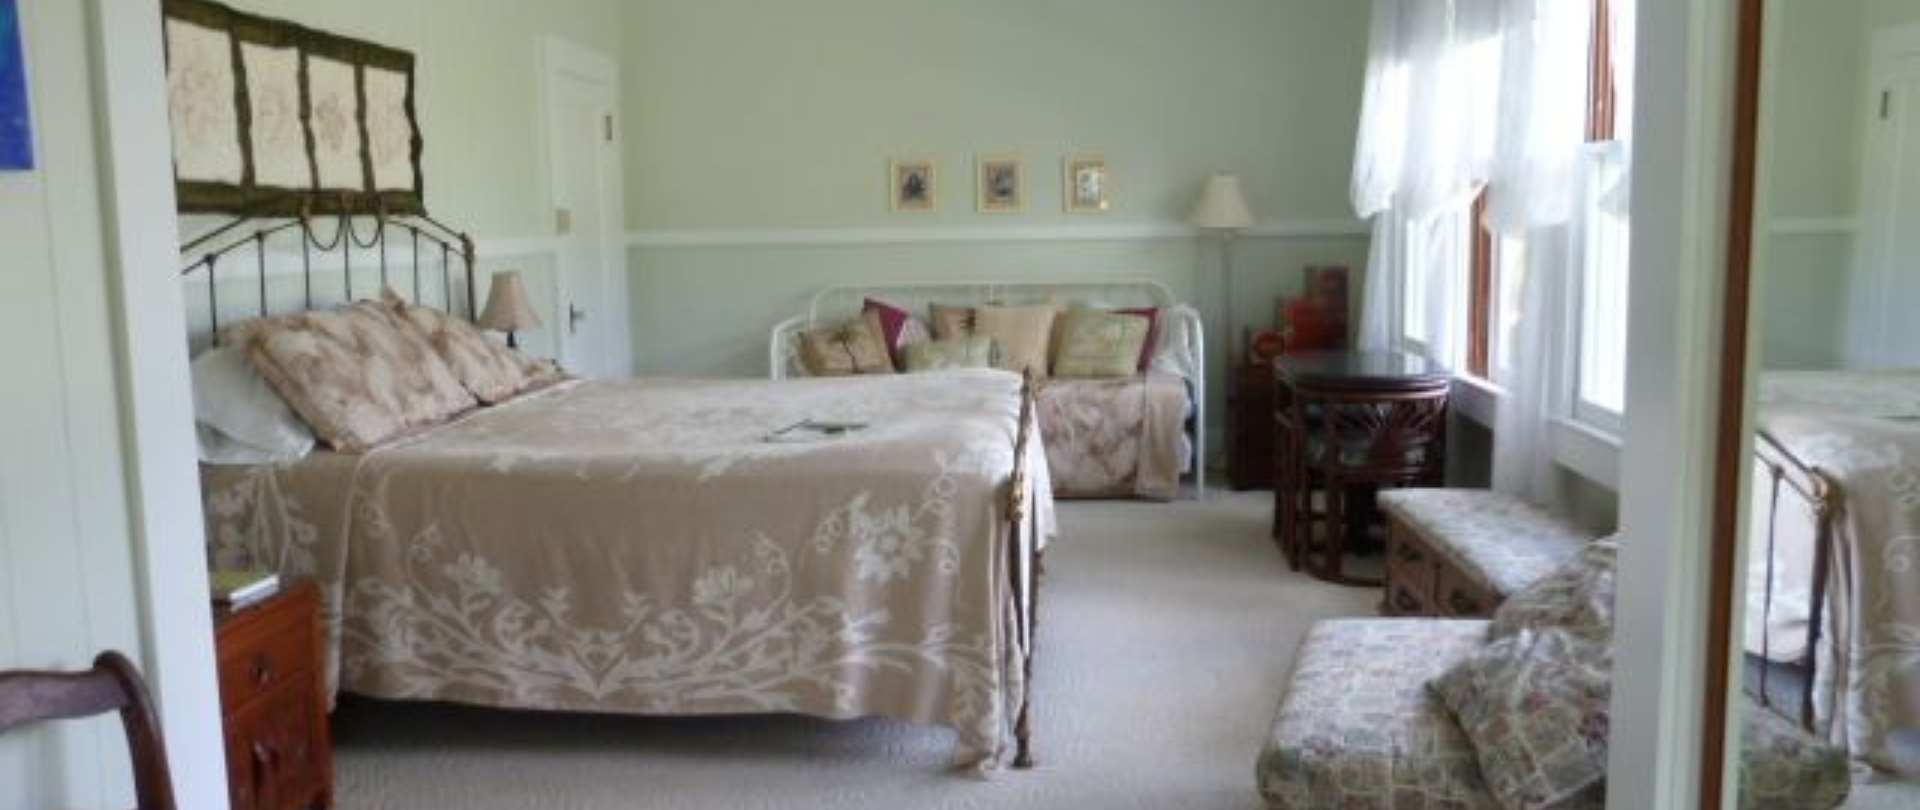 Bed And Breakfast Near Me 28 Images Bed And Breakfast Near Me 28 Images Bar Harbor Maine